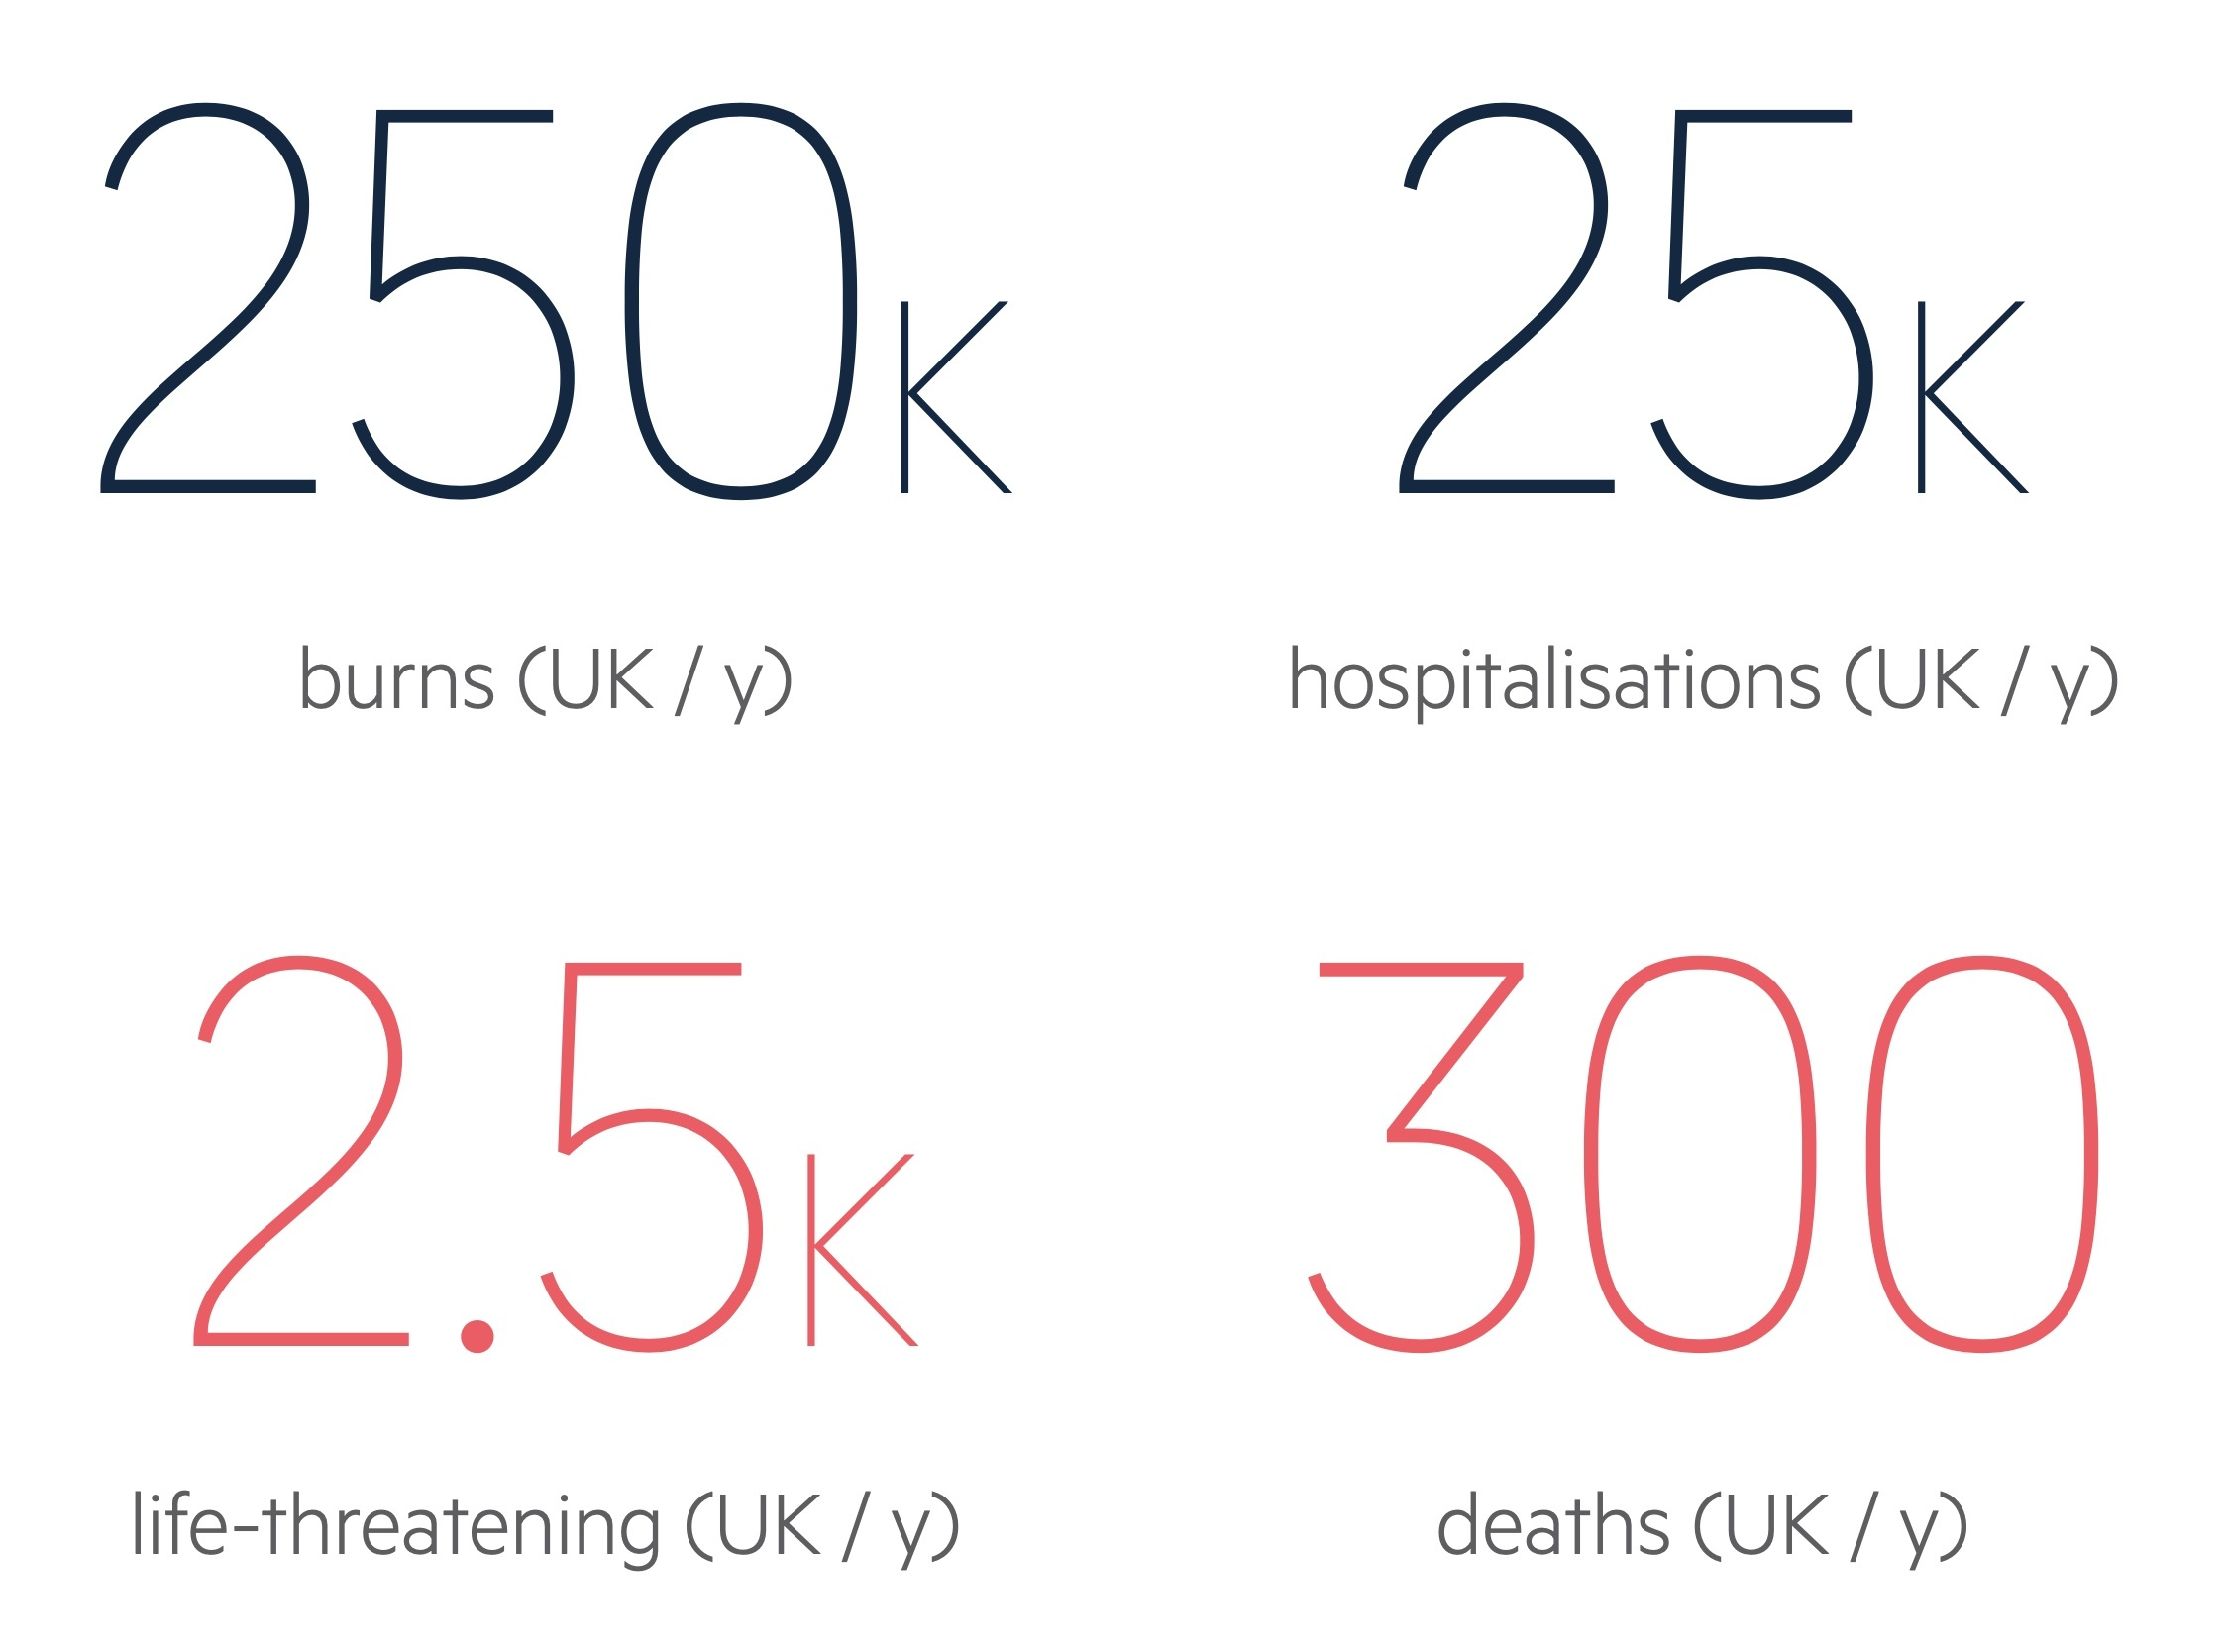 Burns facts and figures